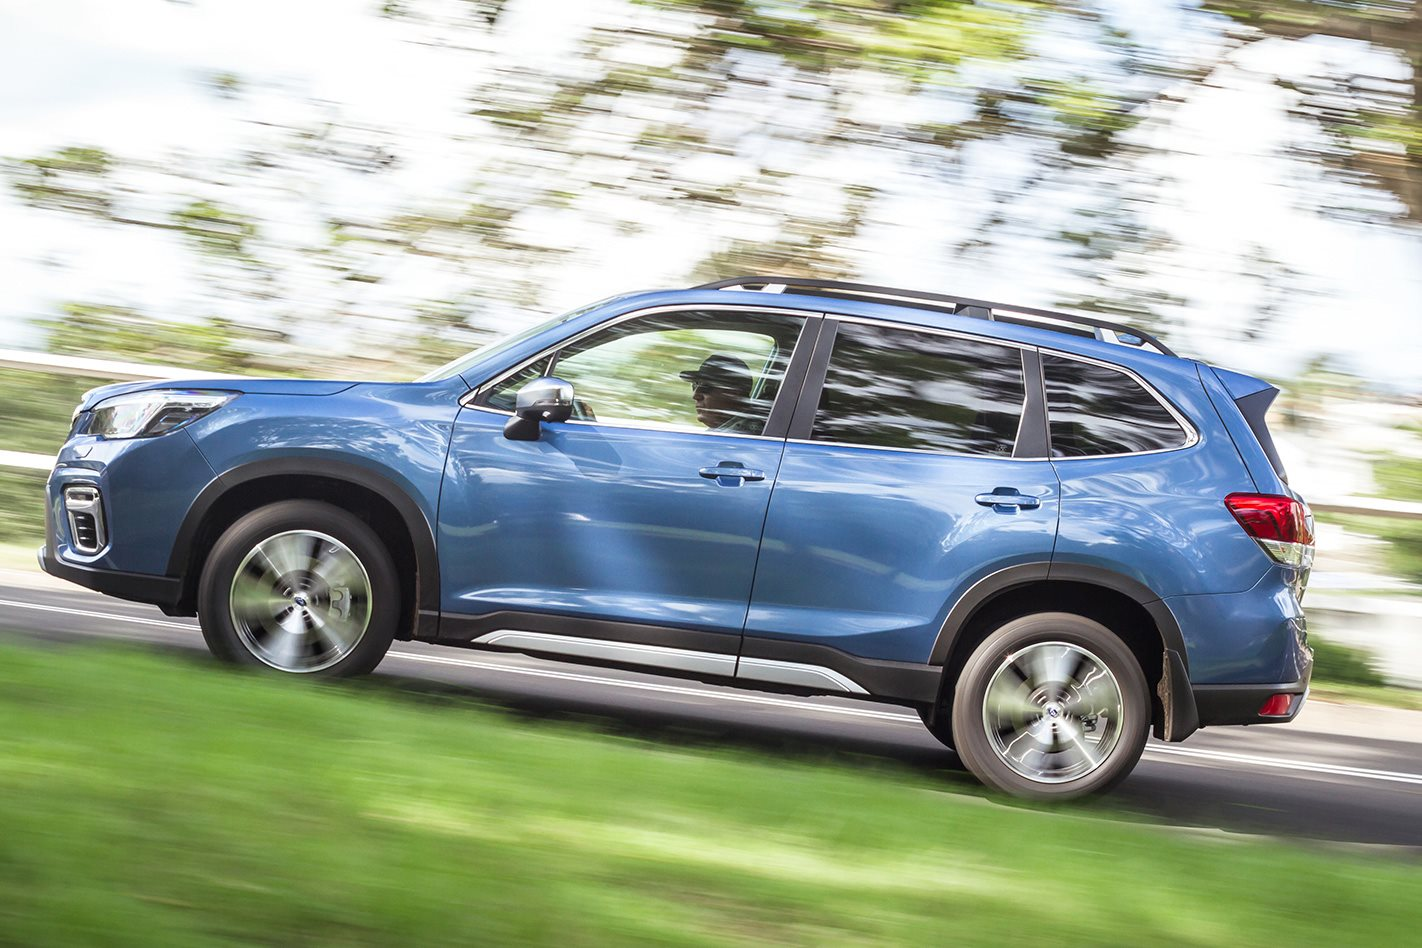 2019 Subaru Forester 2.5i-S long-term review, part two